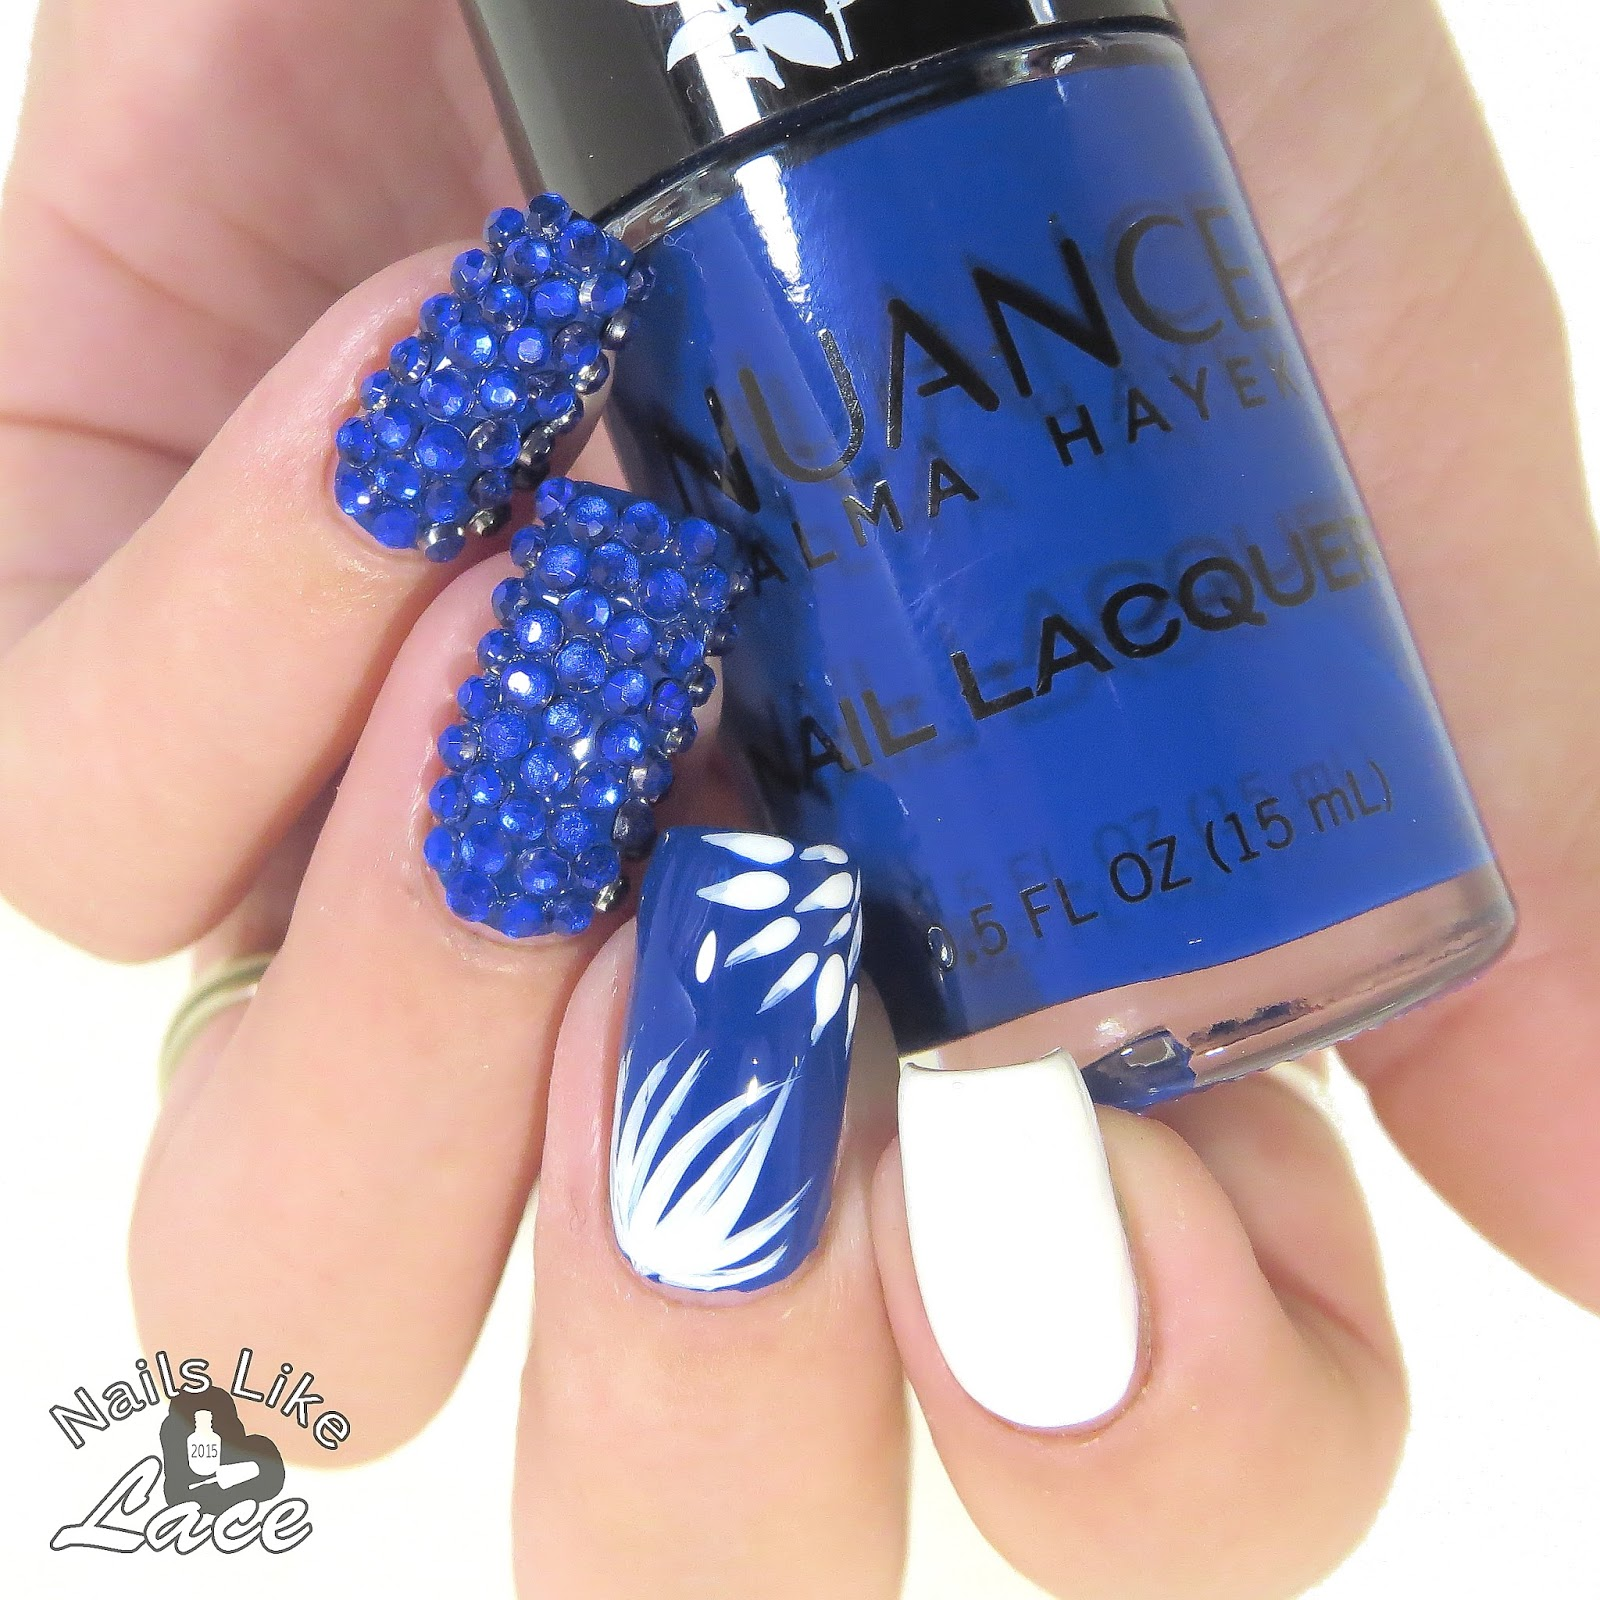 Nailslikelace 40 great nail art ideas new year i used salma hayek nuance blue agave and pro nail lacquer lady in white for some simple firework like bursts and covered two nails with prinsesfo Images